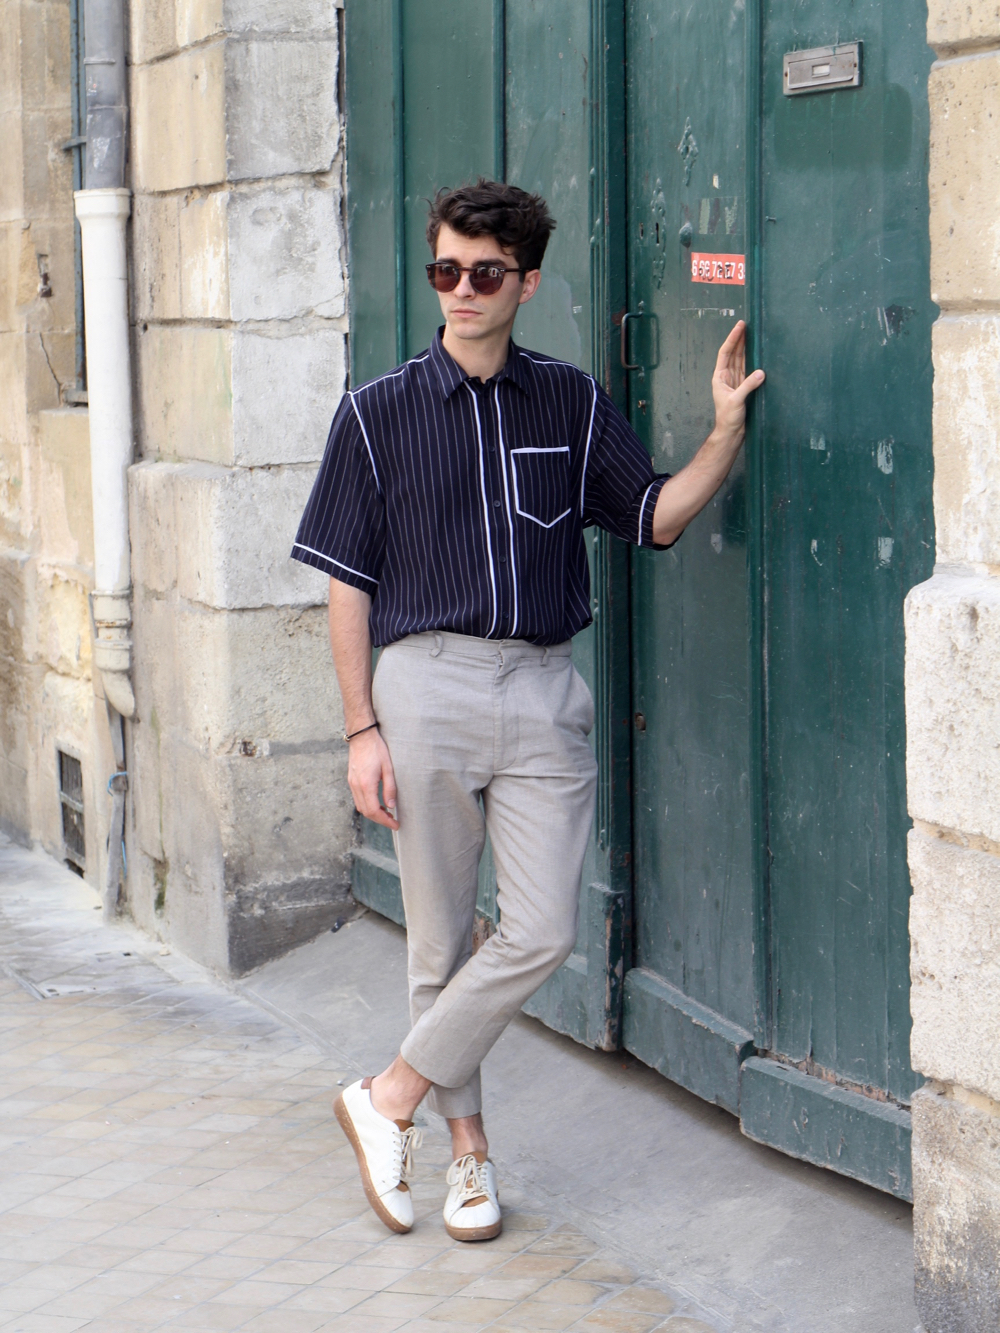 blog-mode-style-homme-paris-bordeaux-chemisette-soie-givenchy-lunettes-made-in-france-atelier-articulier-pantalin-lin-noyoco-baskets-faguo